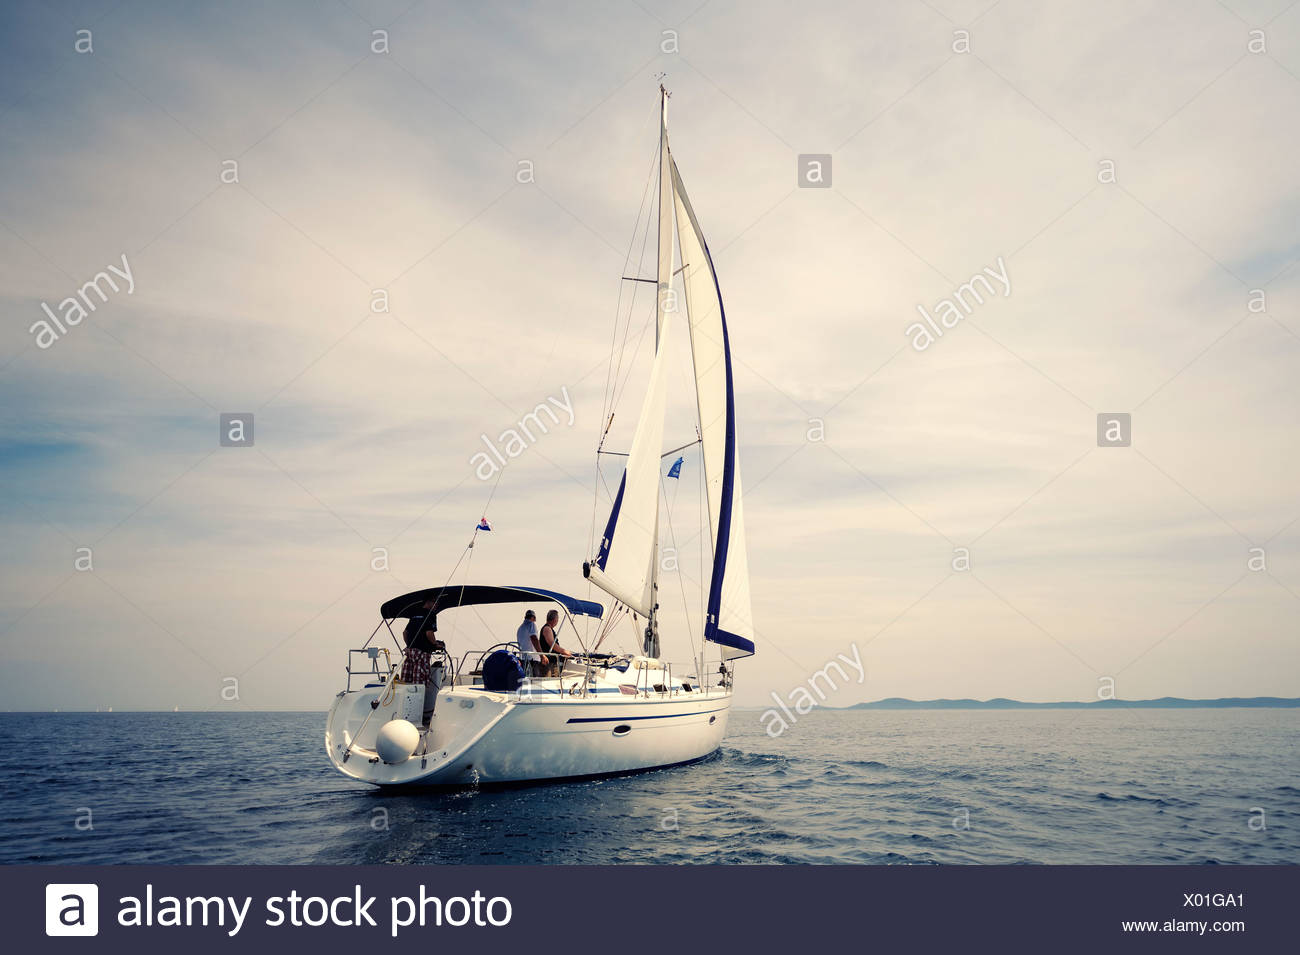 Rear view of a sailing yacht on the sea, no wind Stock Photo